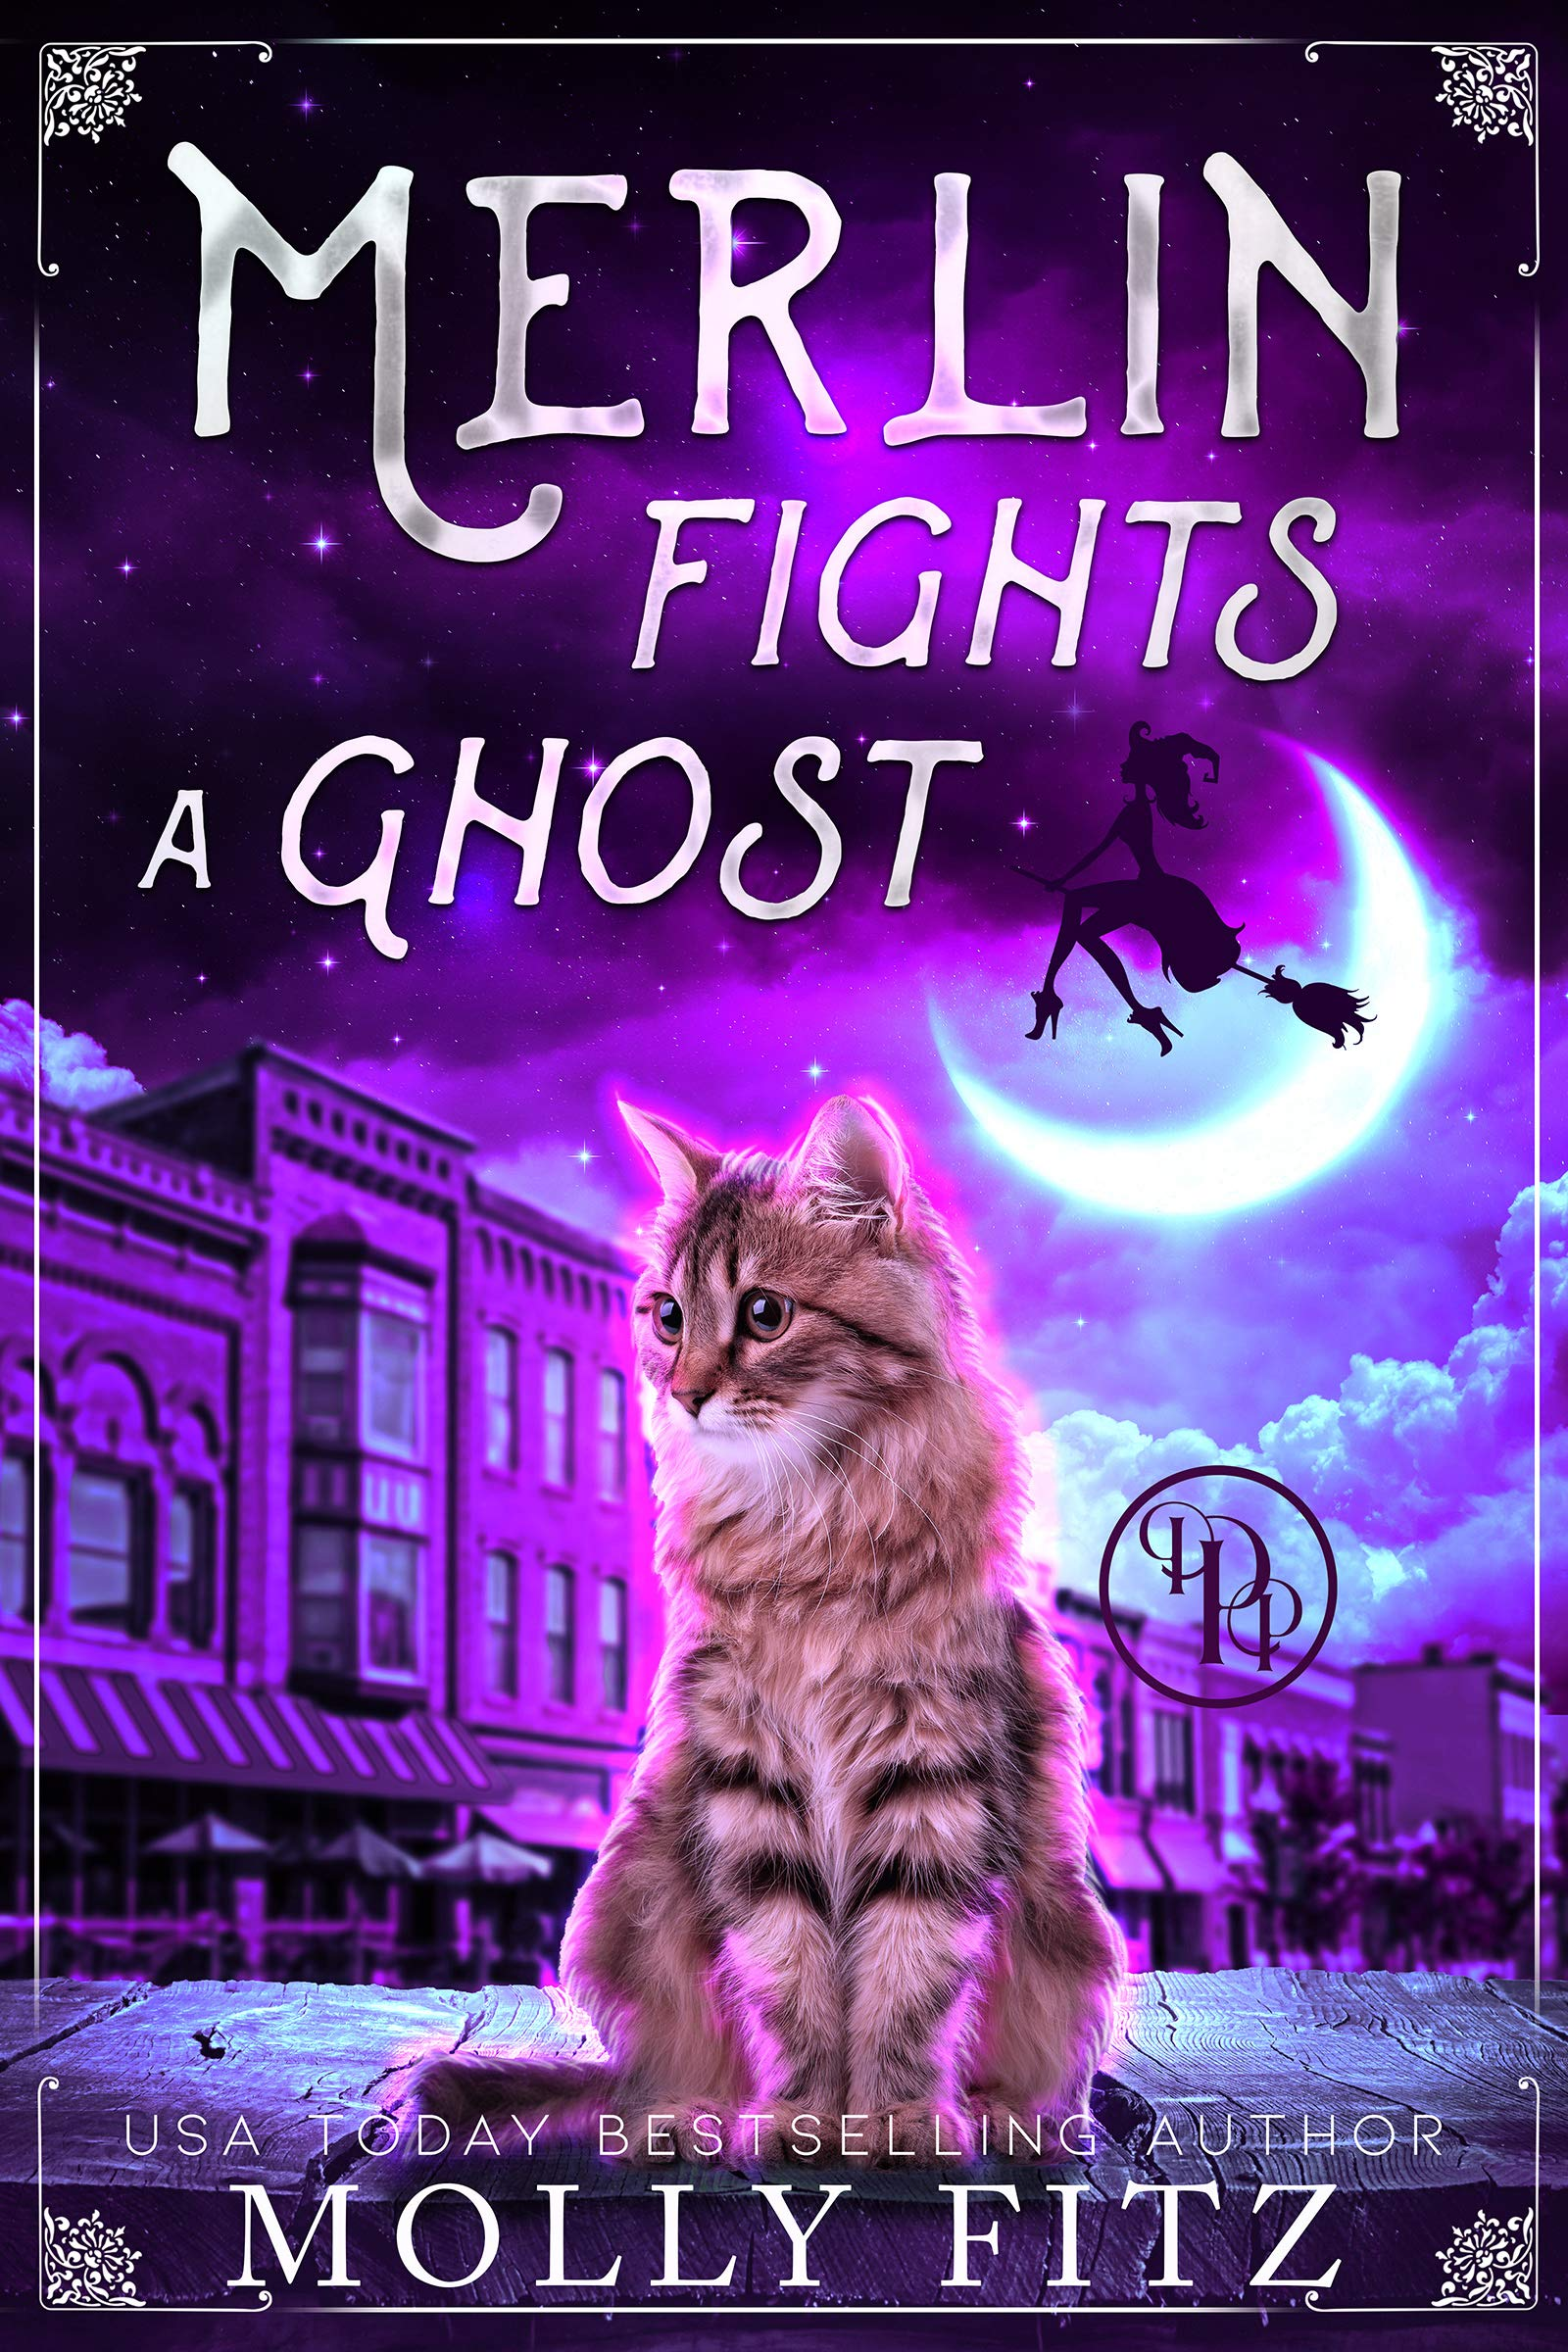 Merlin Fights a Ghost (Merlin the Magical Fluff #2)